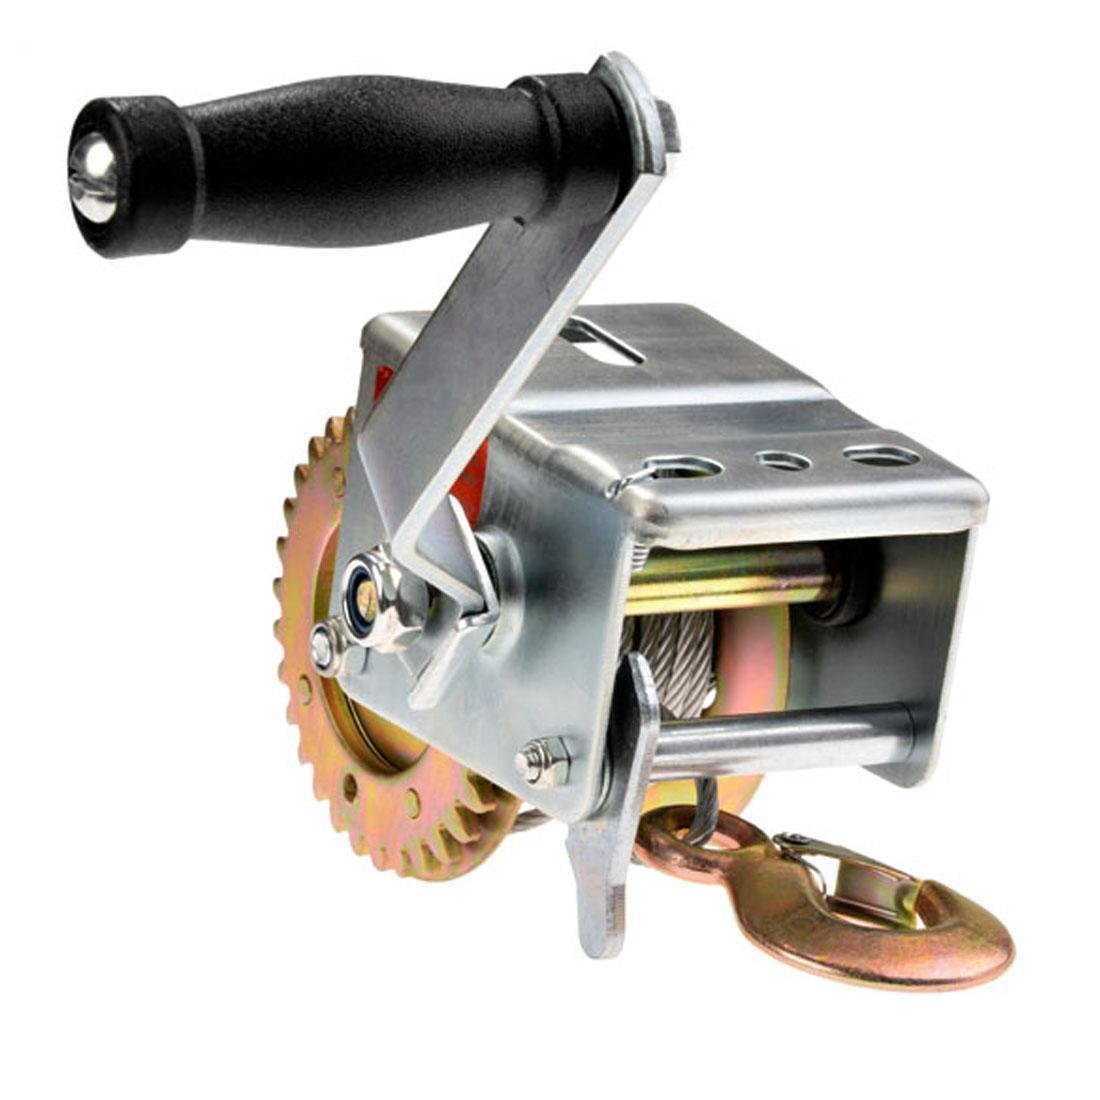 Utheing 600 lbs Hand Winch,Heavy Duty Capacity Winch ATV Boat Trailer by utheing (Image #2)